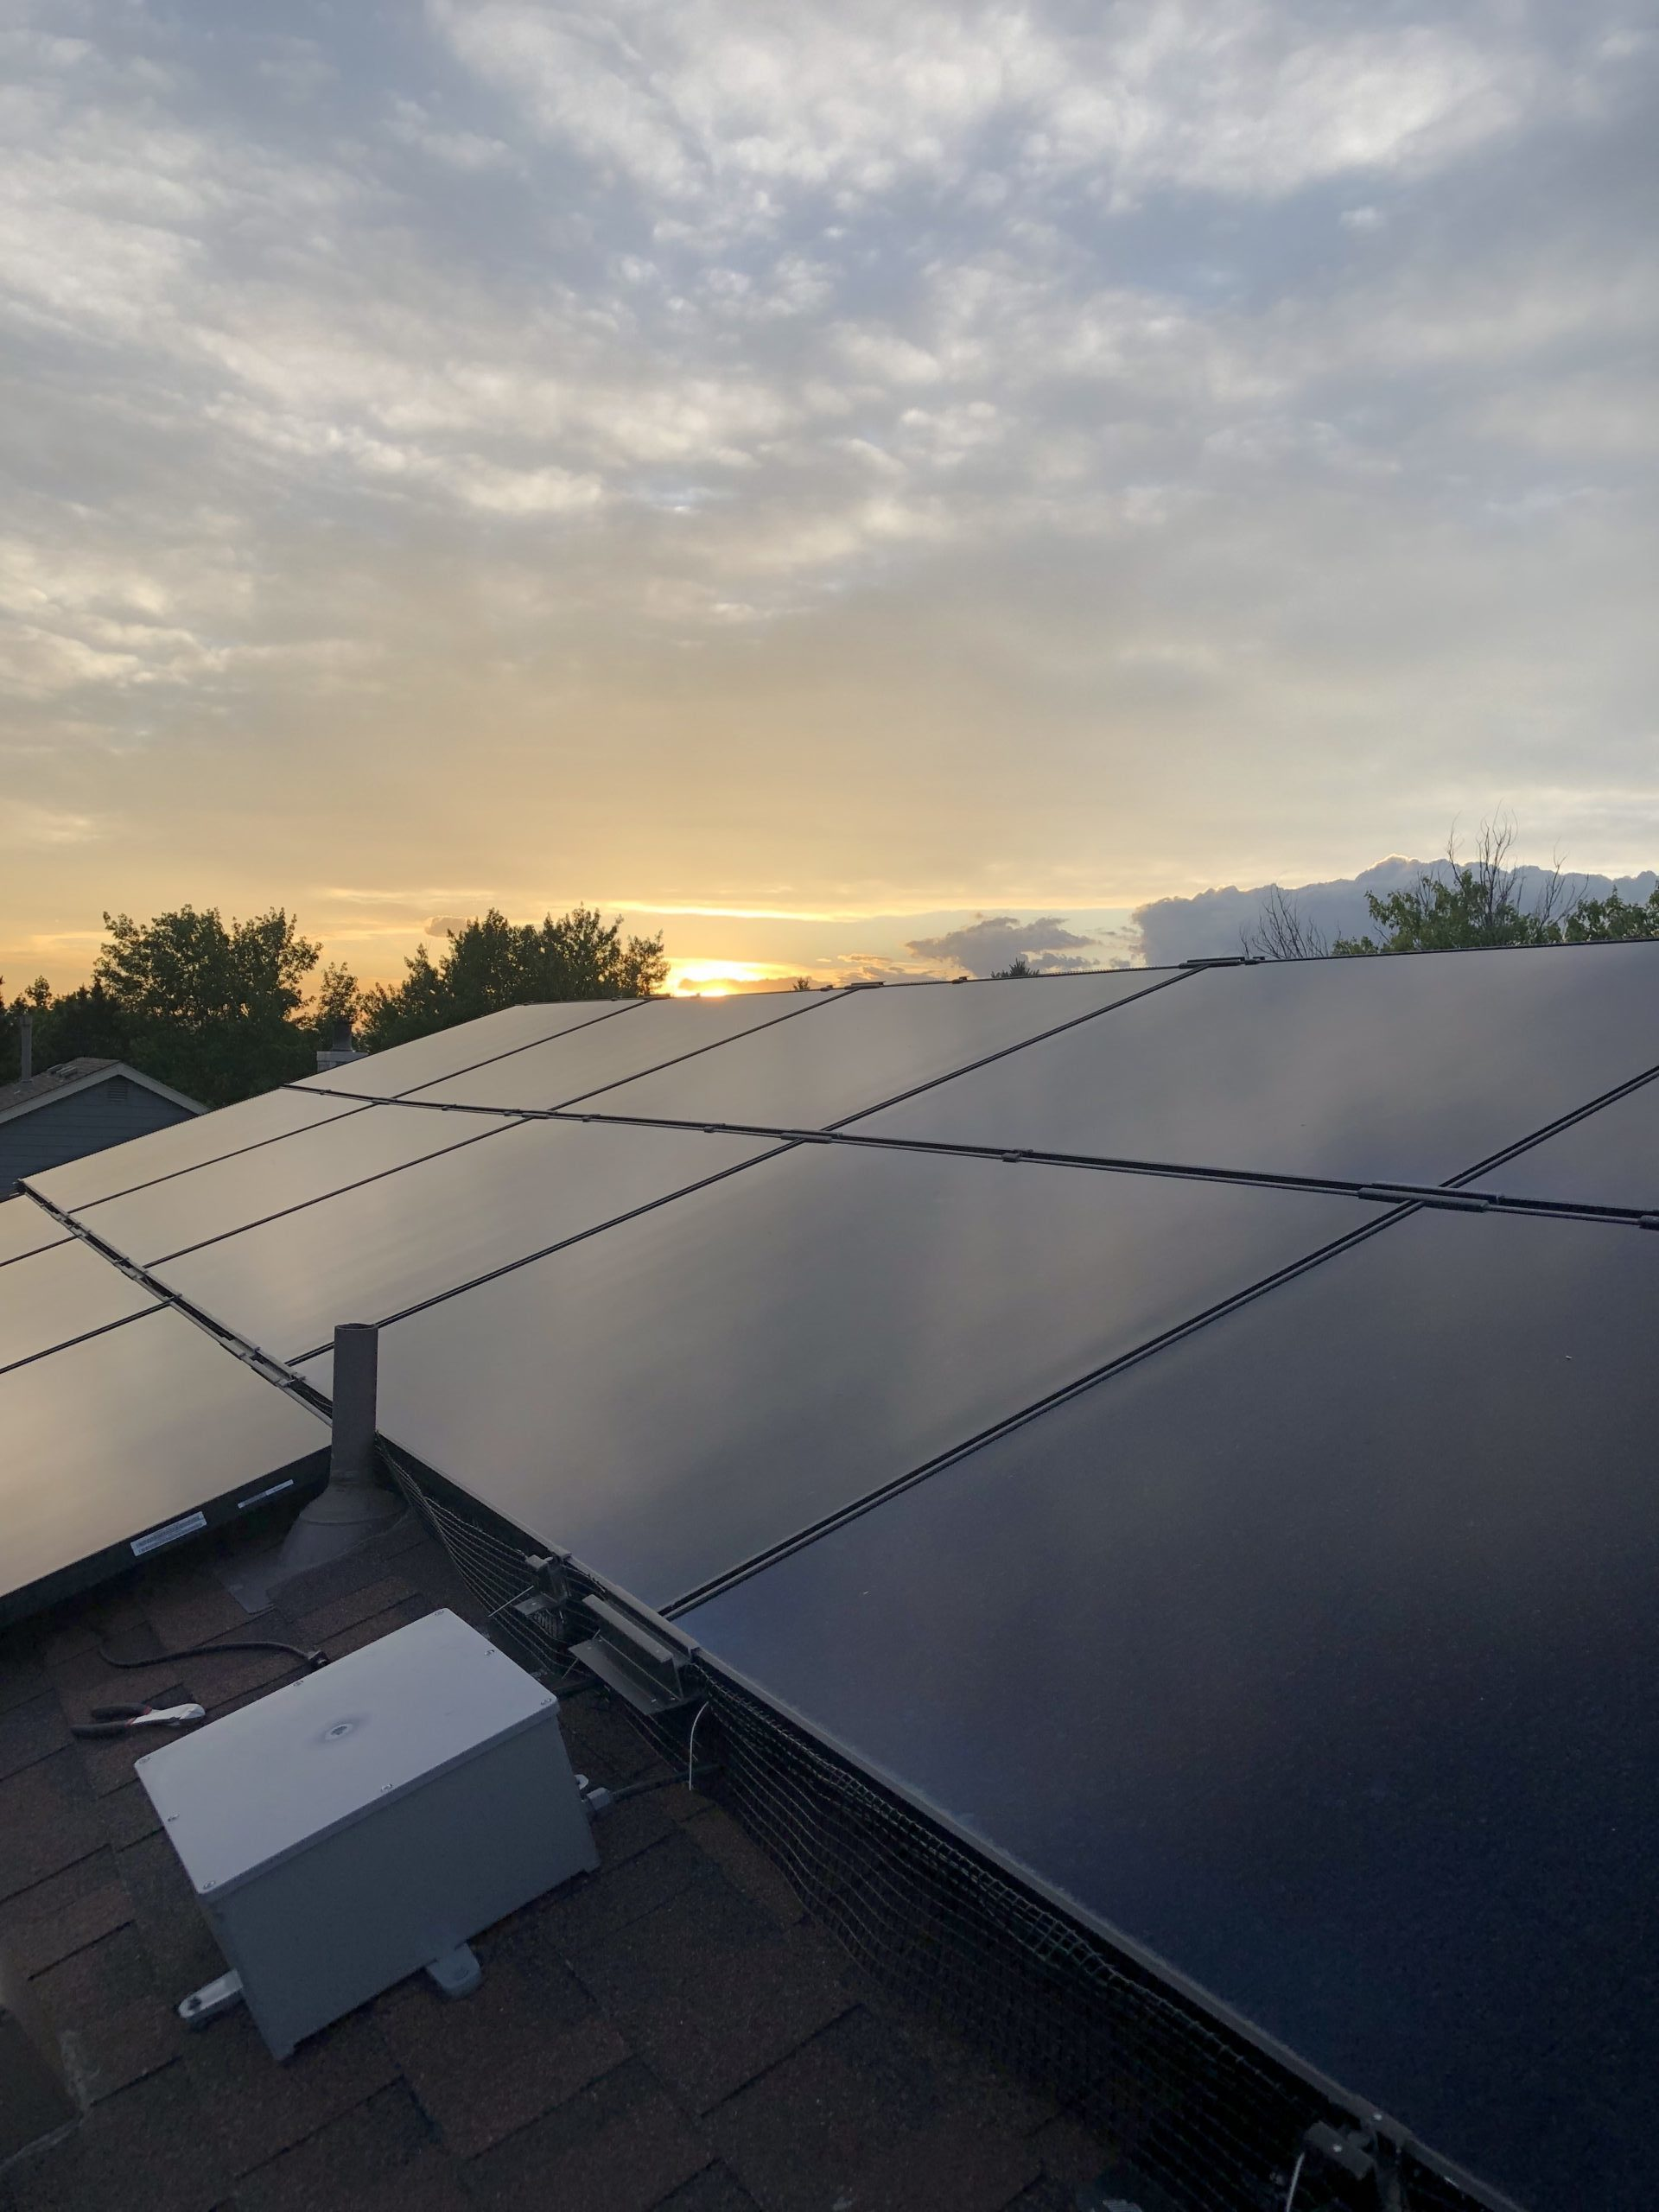 Solaria solar panels on a roof at sunset